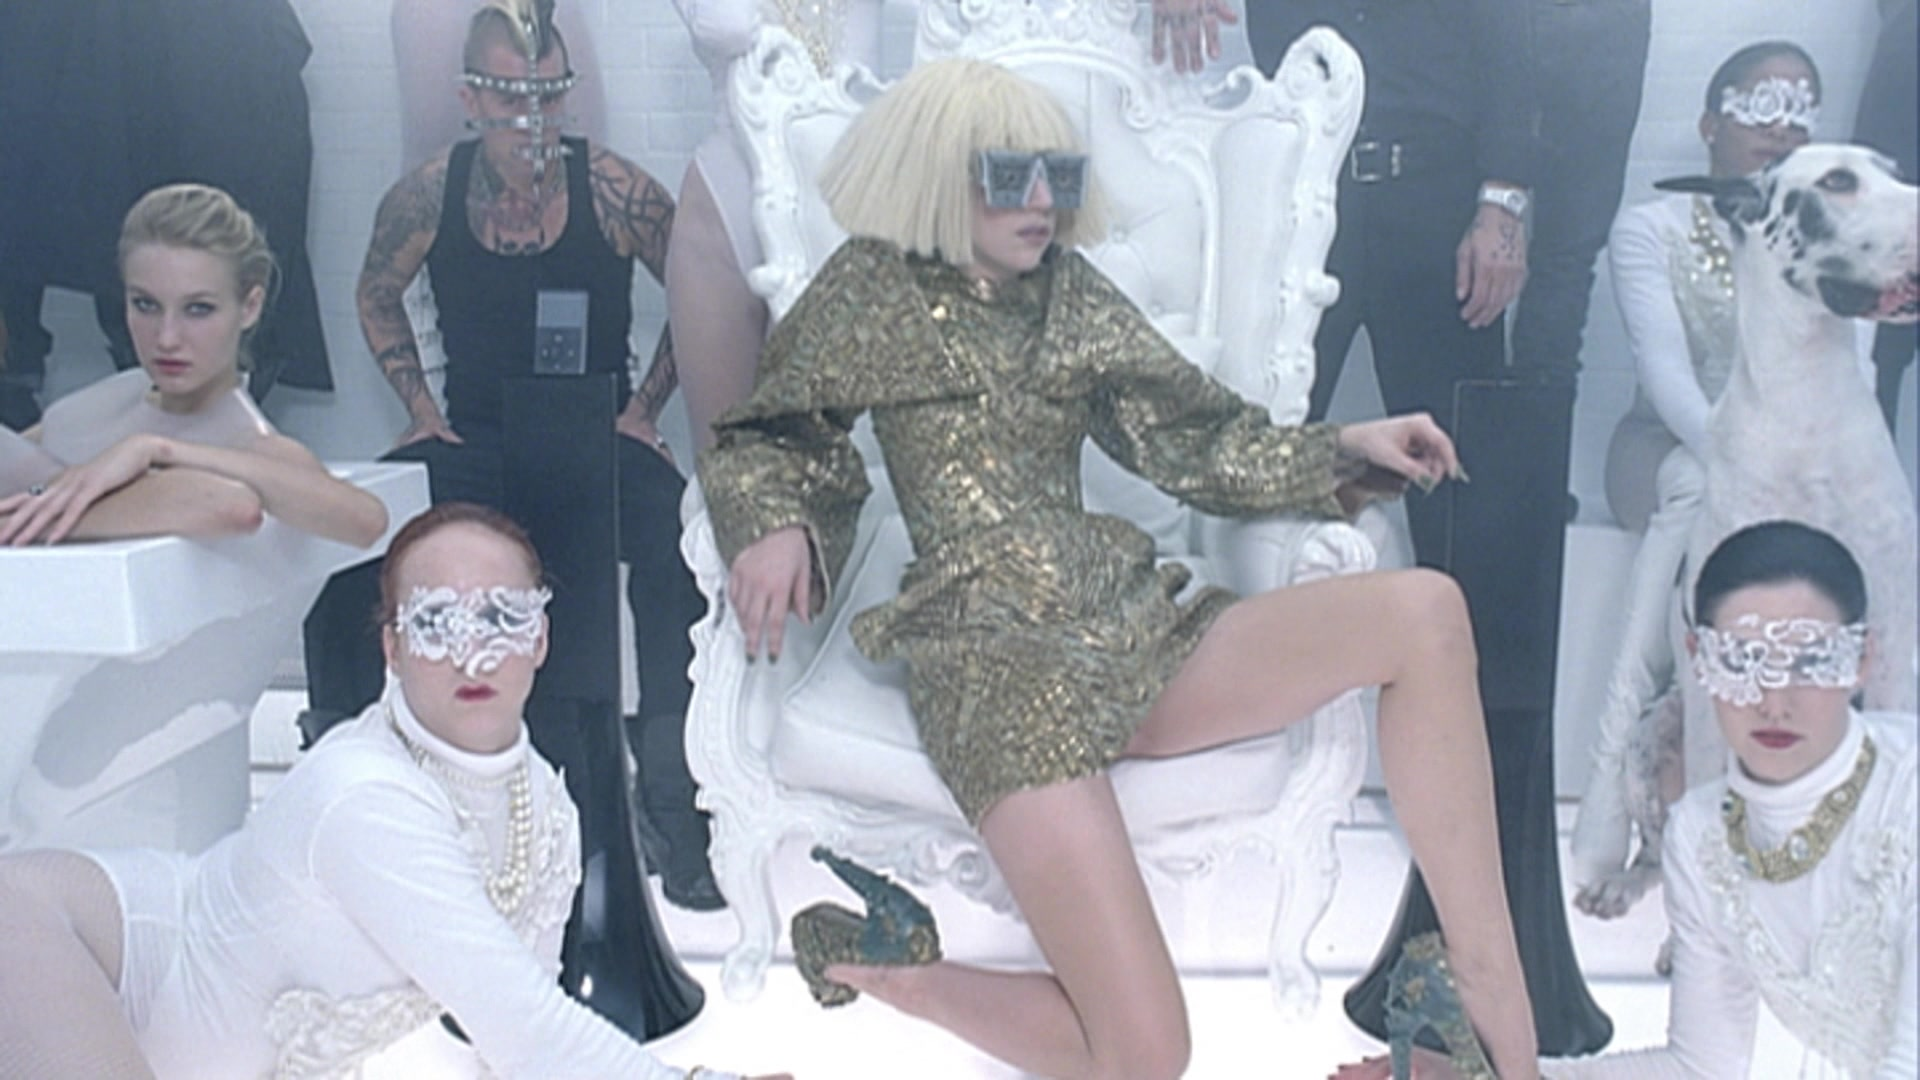 File:Lady Gaga - Bad Romance 002.jpg